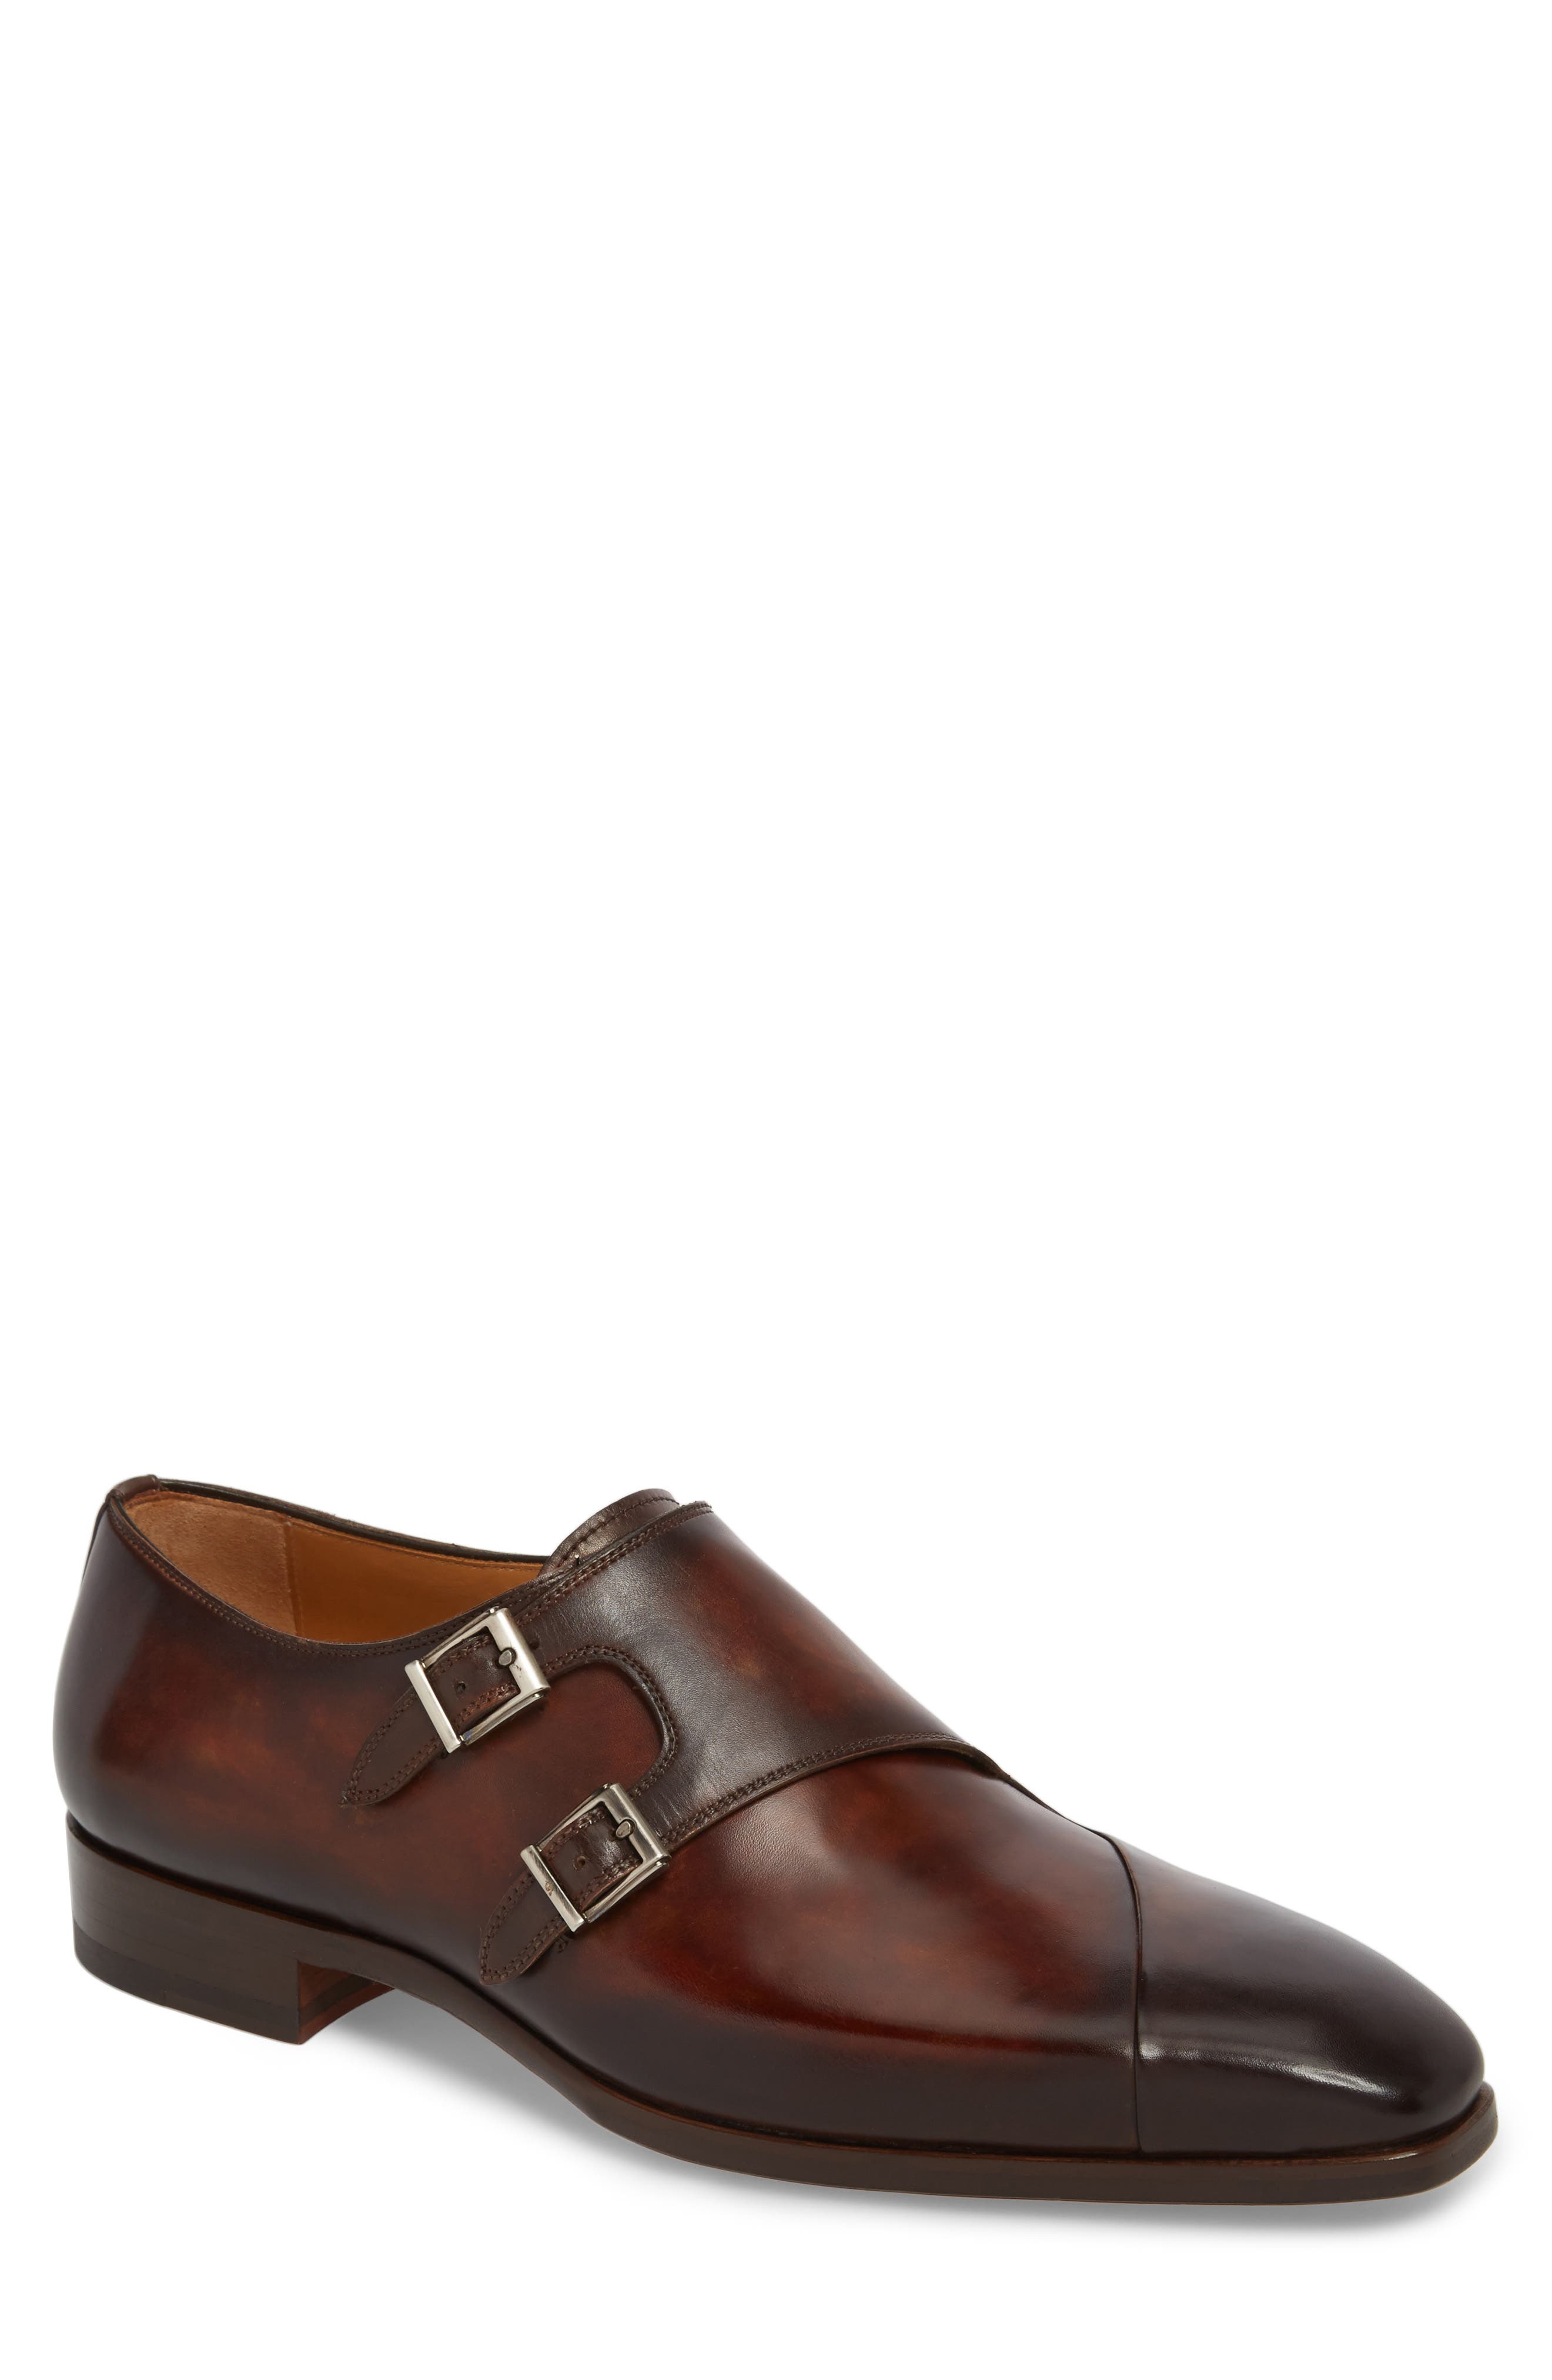 Hafiz Double Strap Monk Shoe,                             Main thumbnail 1, color,                             TABACO LEATHER